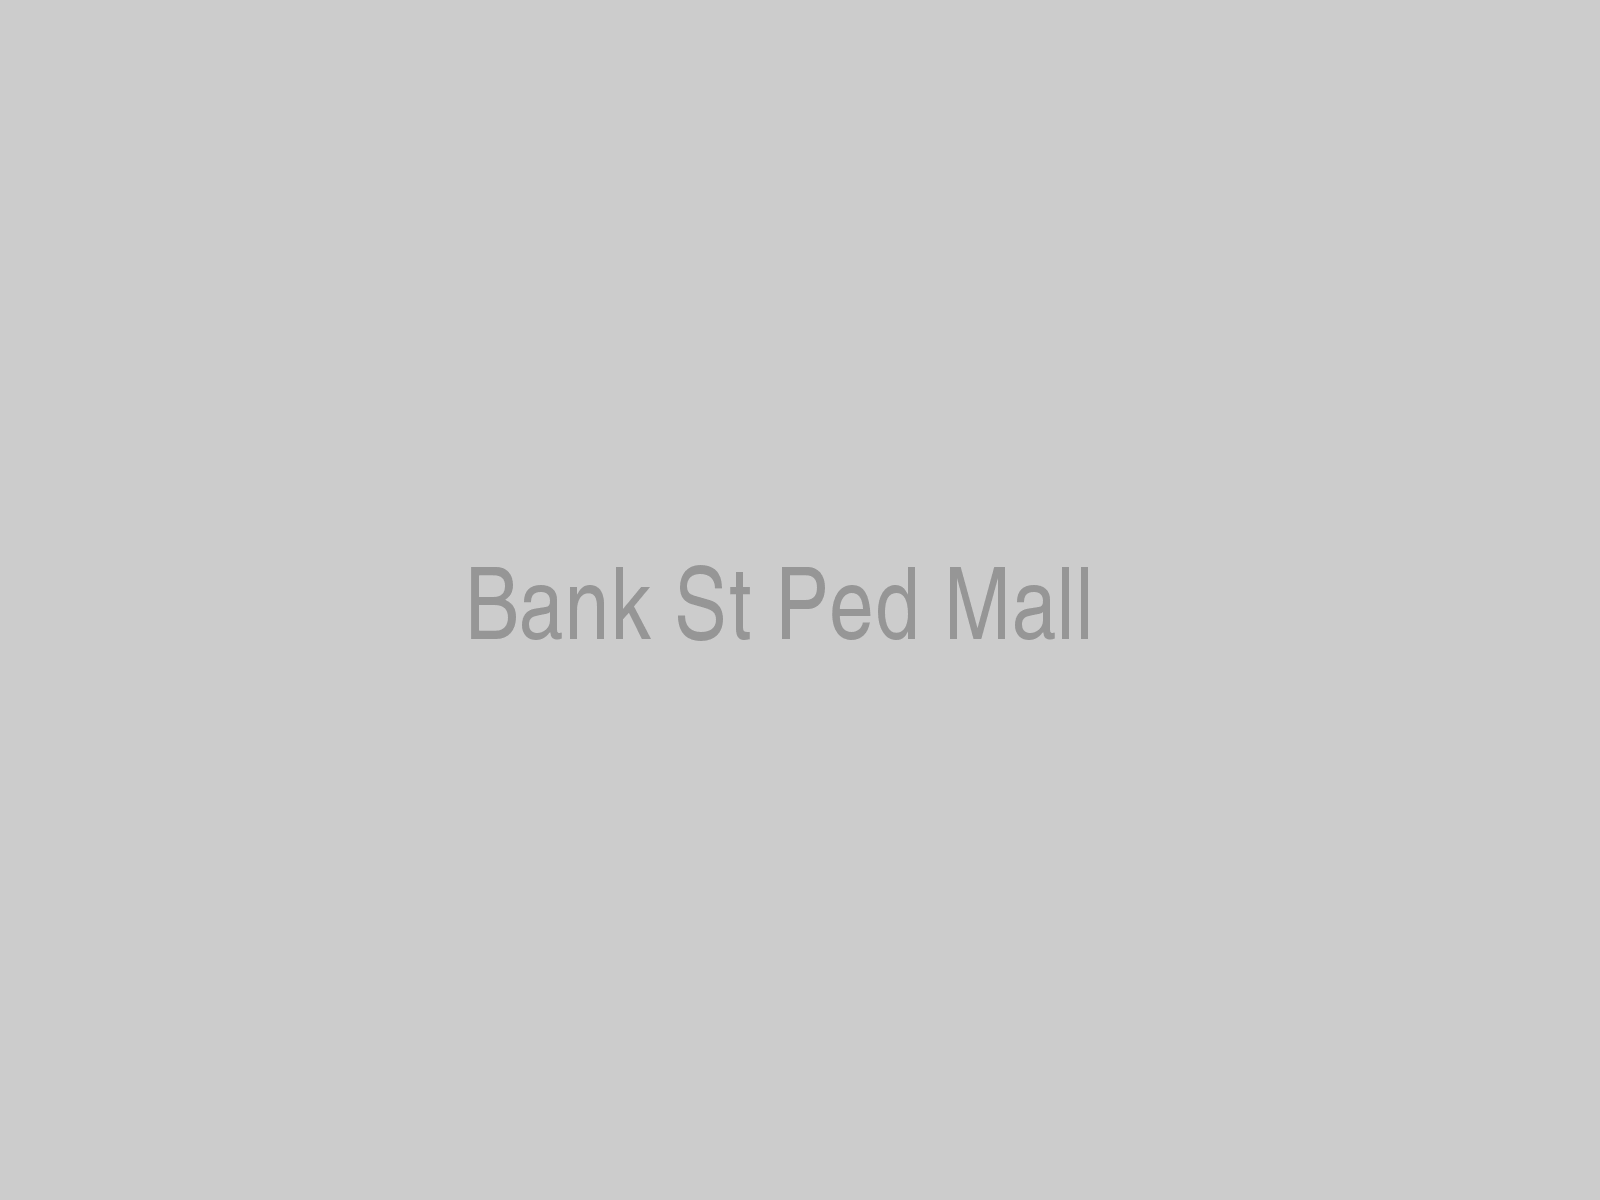 Bank St Ped Mall